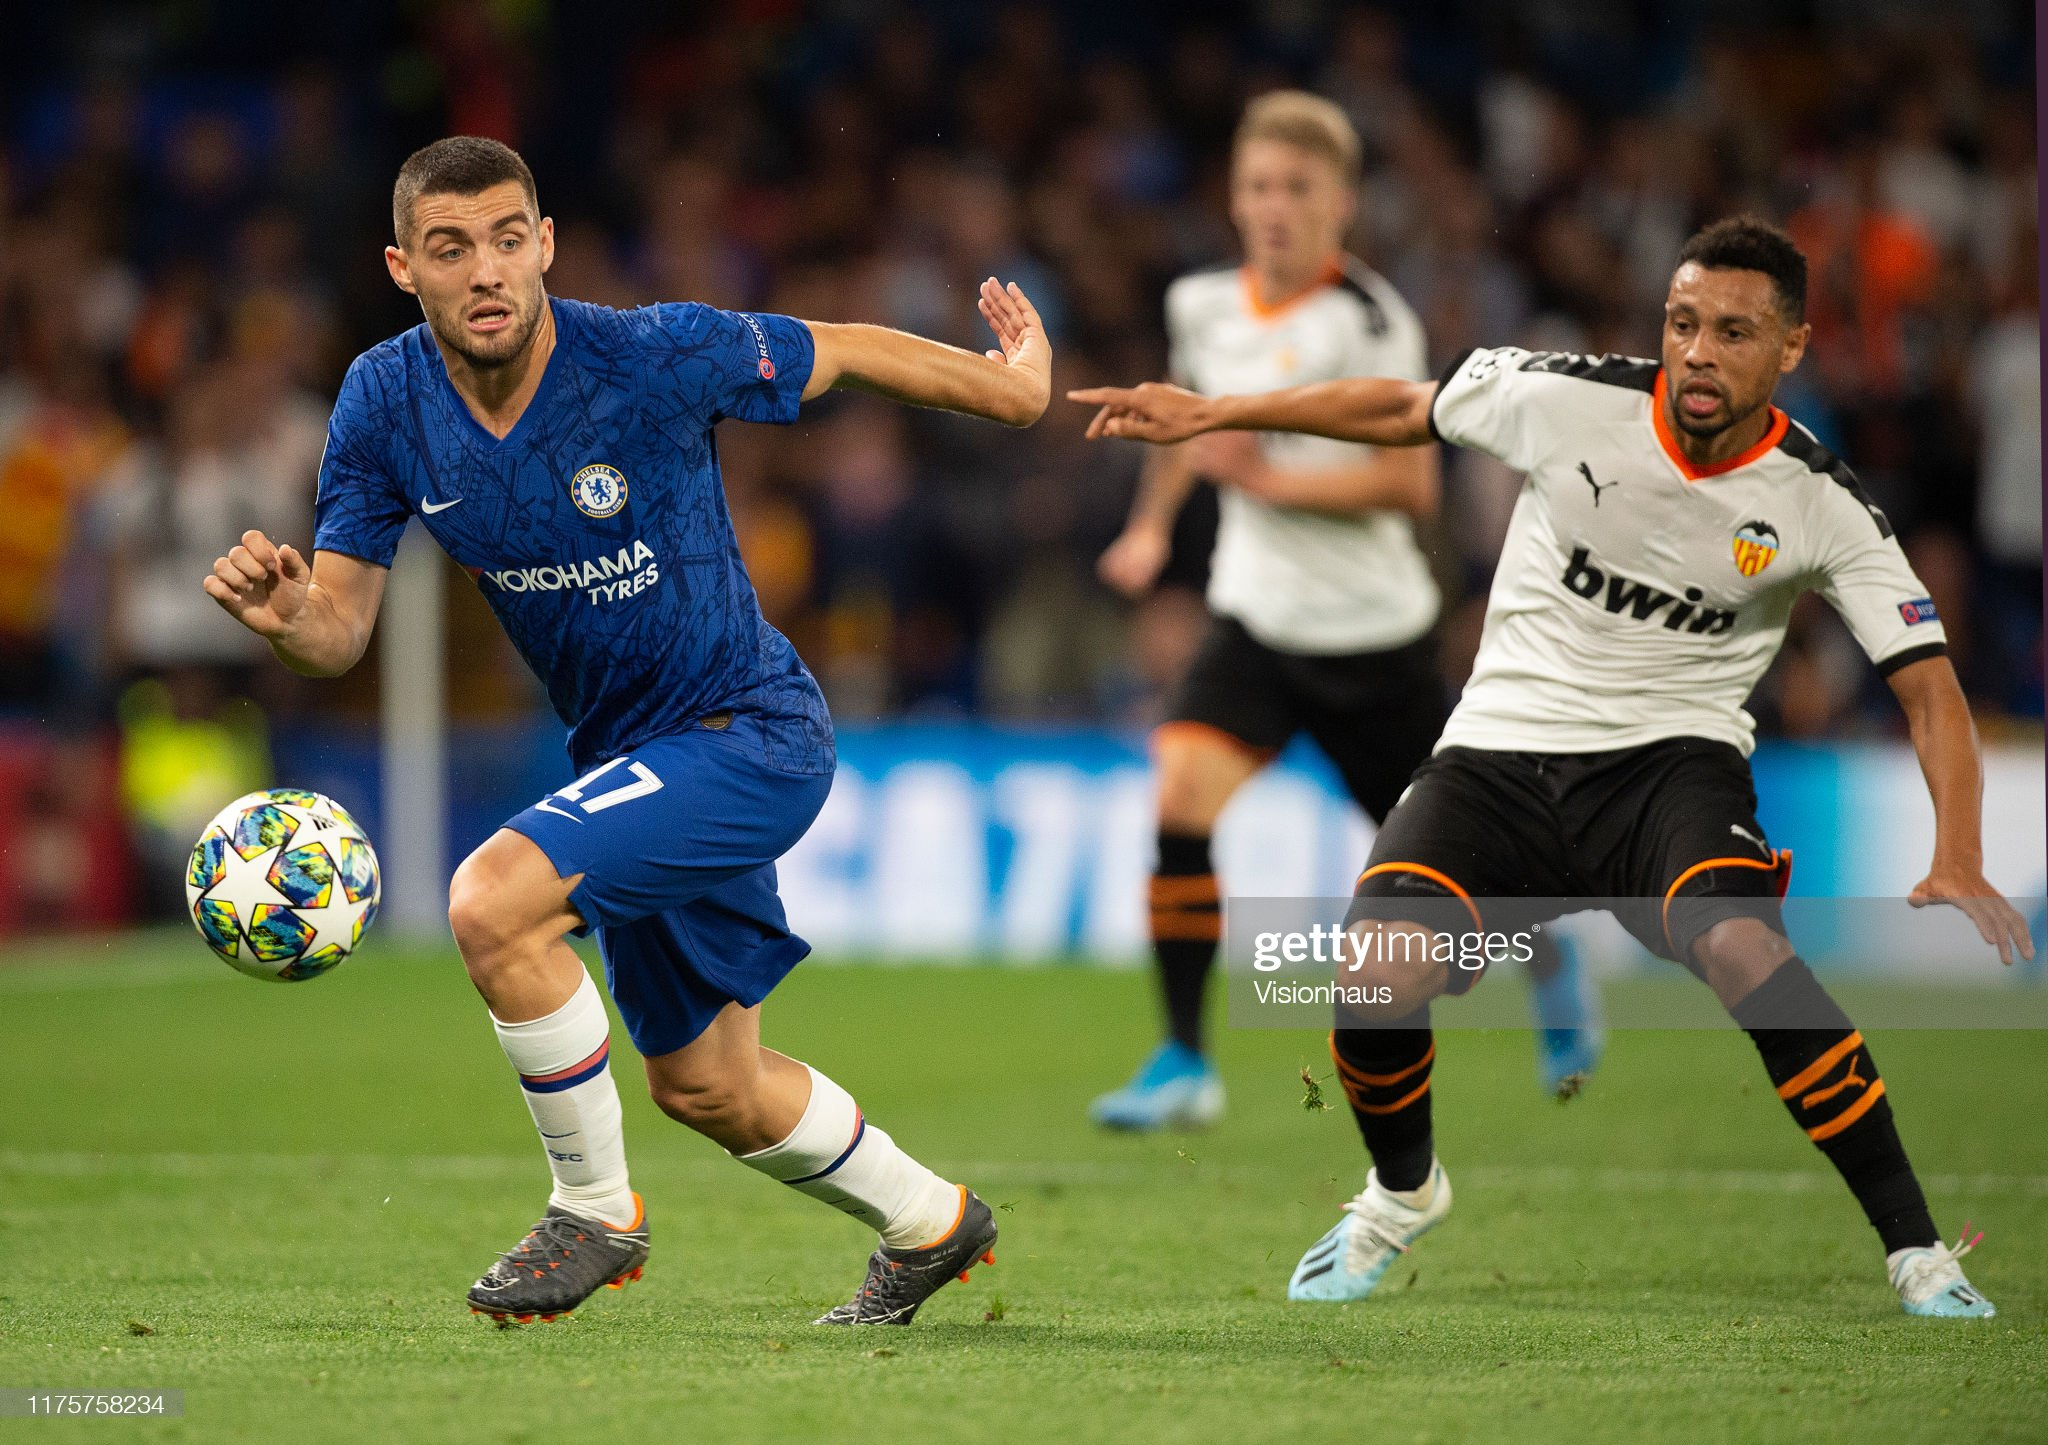 Valencia v Chelsea preview, prediction and odds